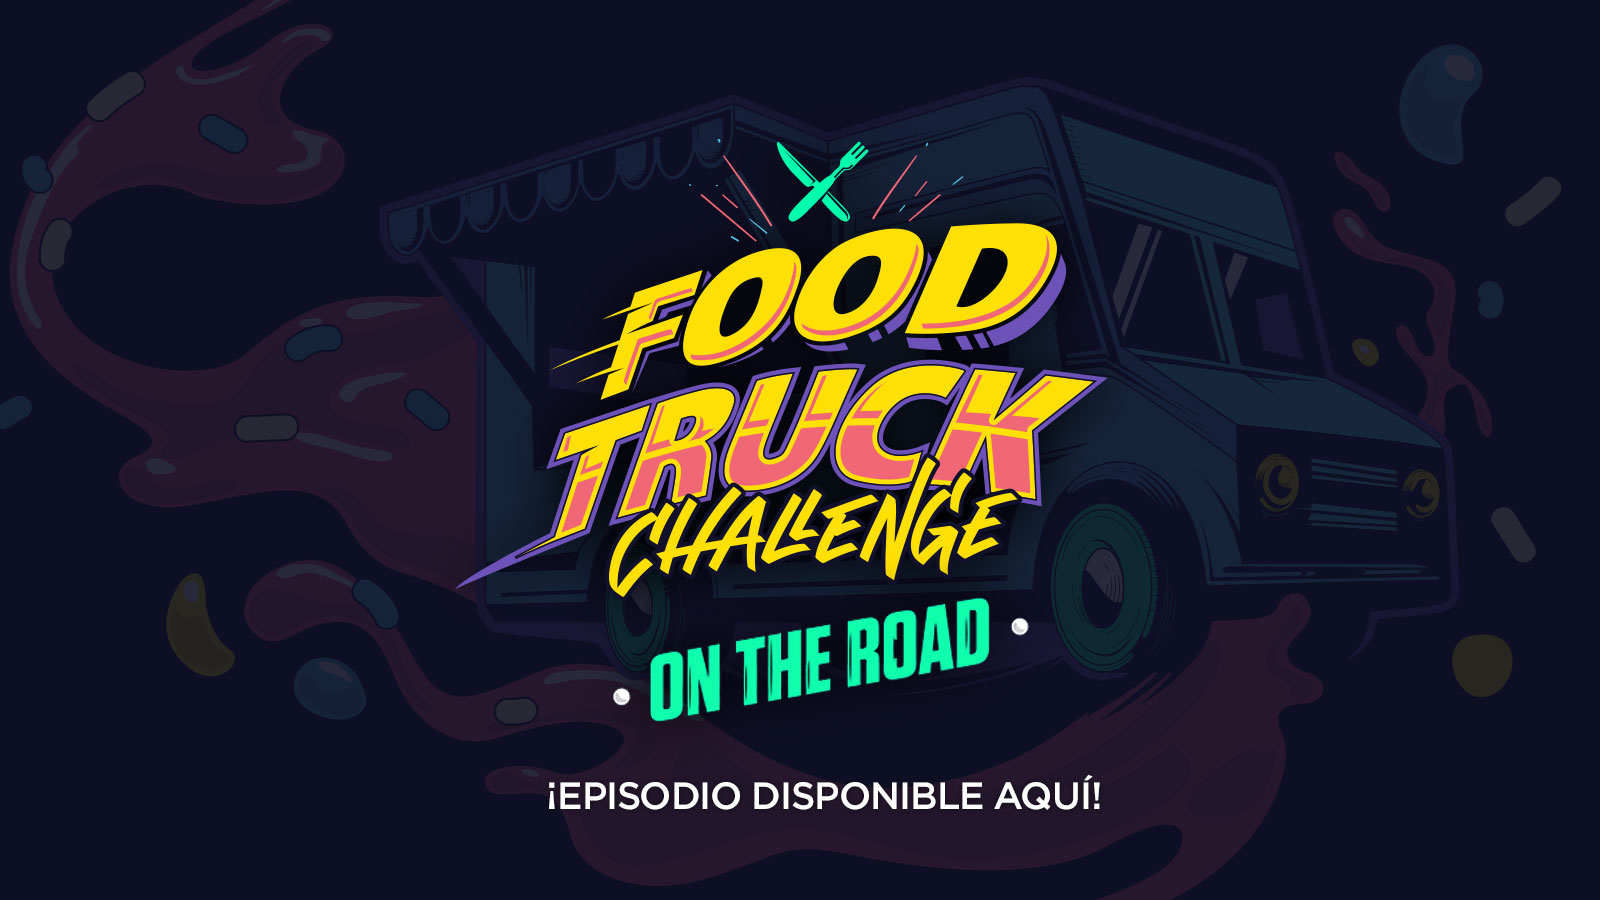 sony_ch_foodtruckchallenge-ontheroad_1600x900